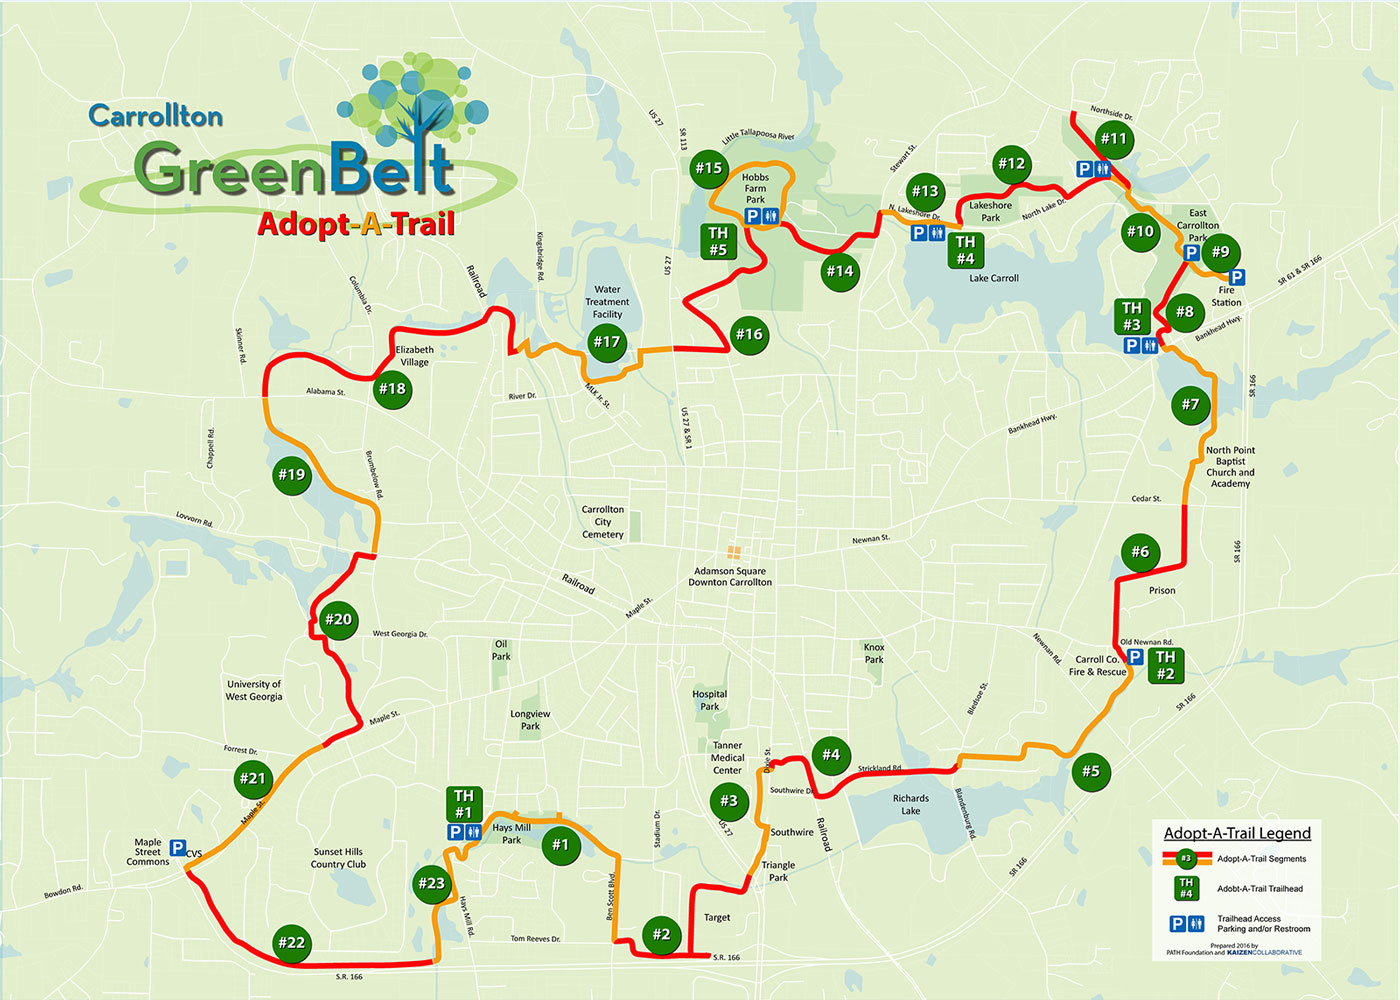 Green Belt Map Green Belt Aat Map 2016   The Carrollton Greenbelt